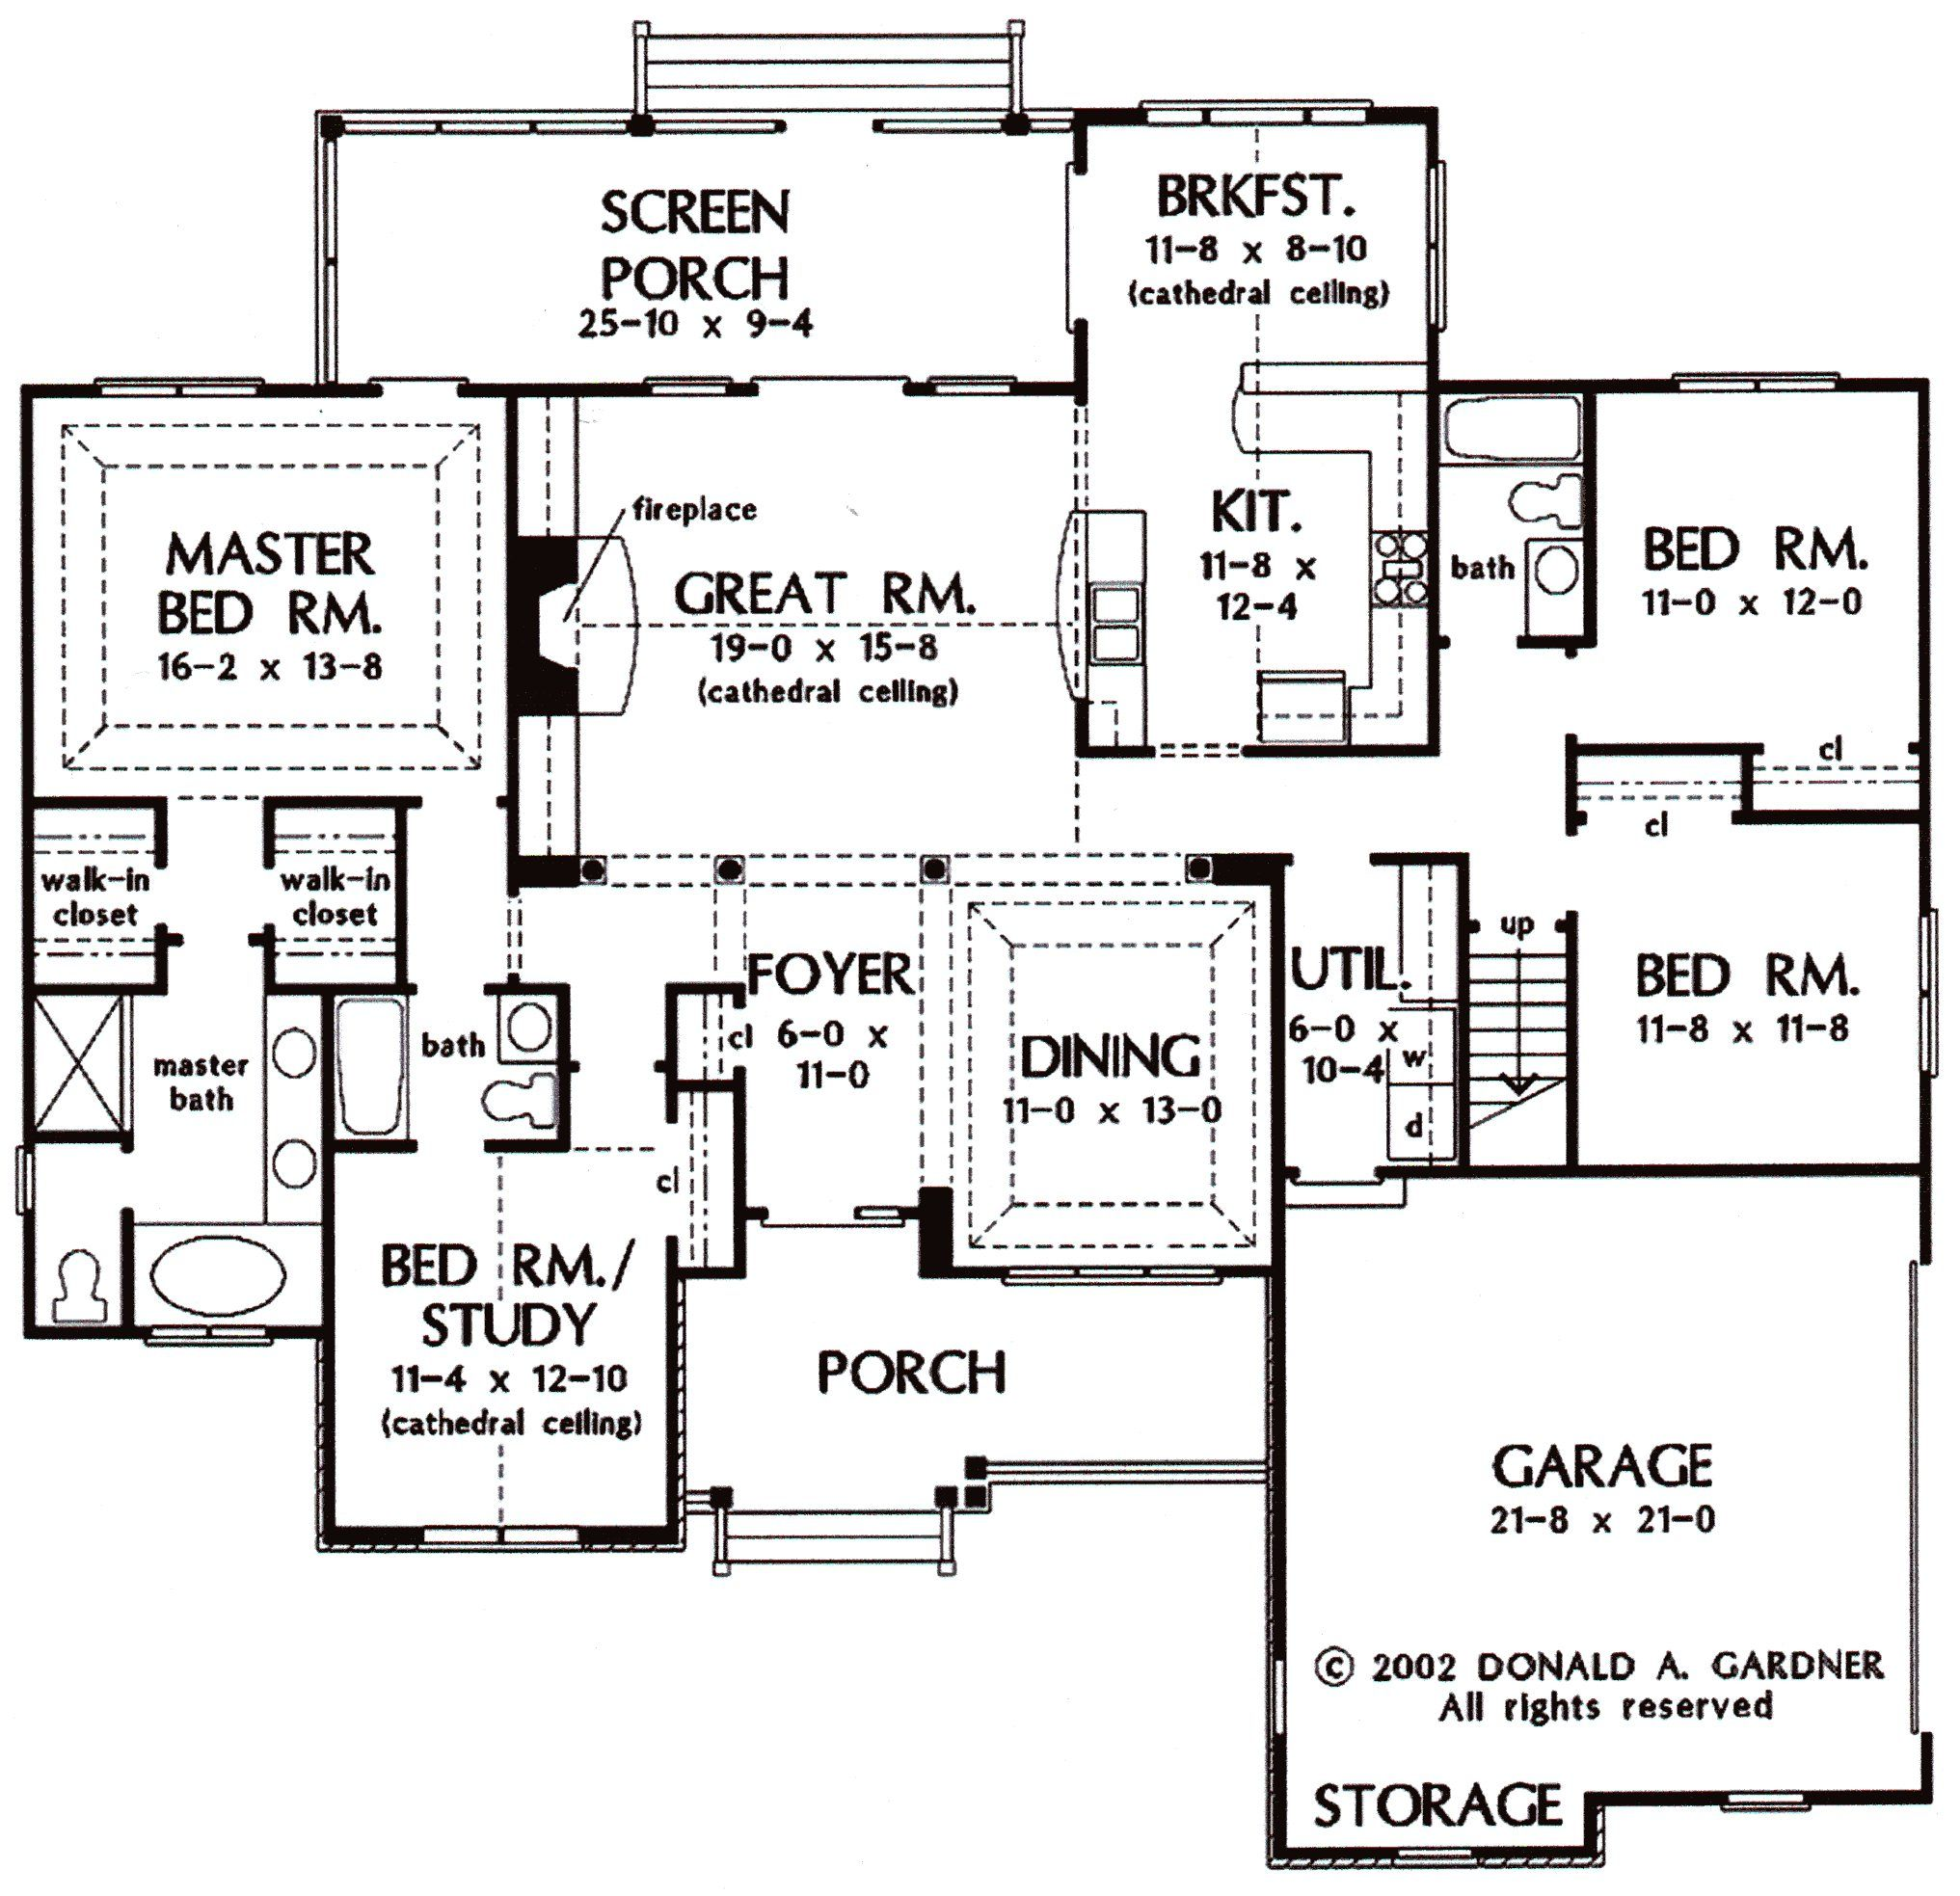 Free house plans 2000 sq ft house design ideas House blueprints free